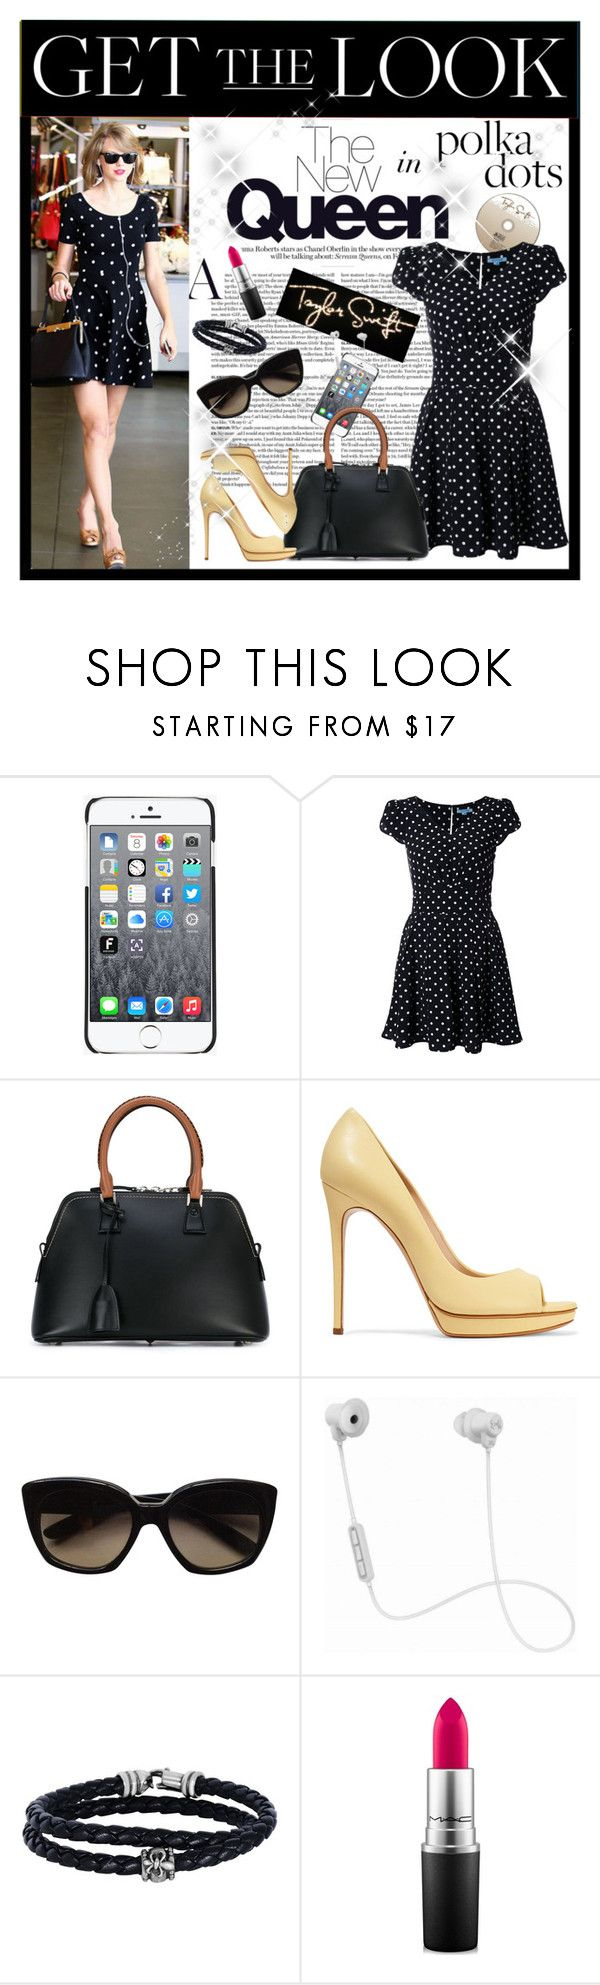 """Polka Dots and Taylor Swift"" by pomy22 ❤ liked on Polyvore featuring Moschino, Guild Prime, Maison Margiela, Casadei, Forum, Bottega Veneta, JBL, Phillip Gavriel, MAC Cosmetics and GetTheLook"